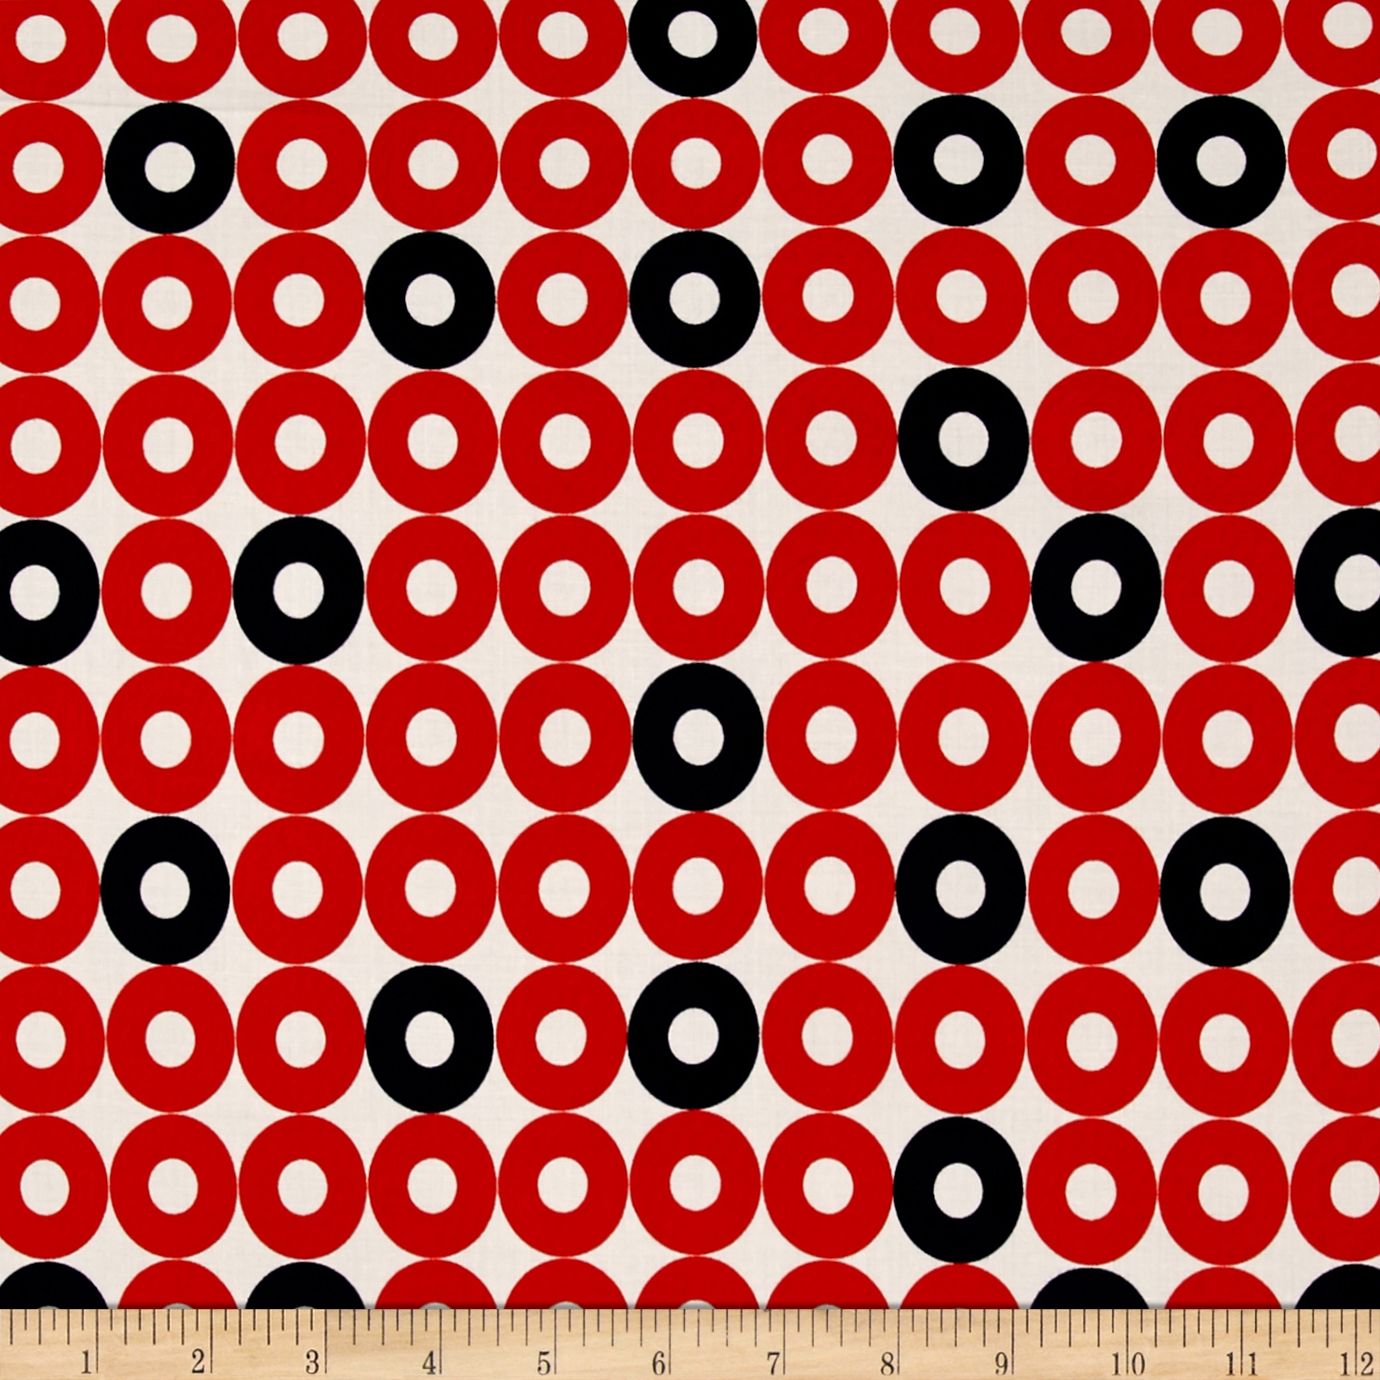 Cotton + Steel Rotary Club Rayon Challis Ring Rings Red-Navy Fabric by Cotton & Steel in USA